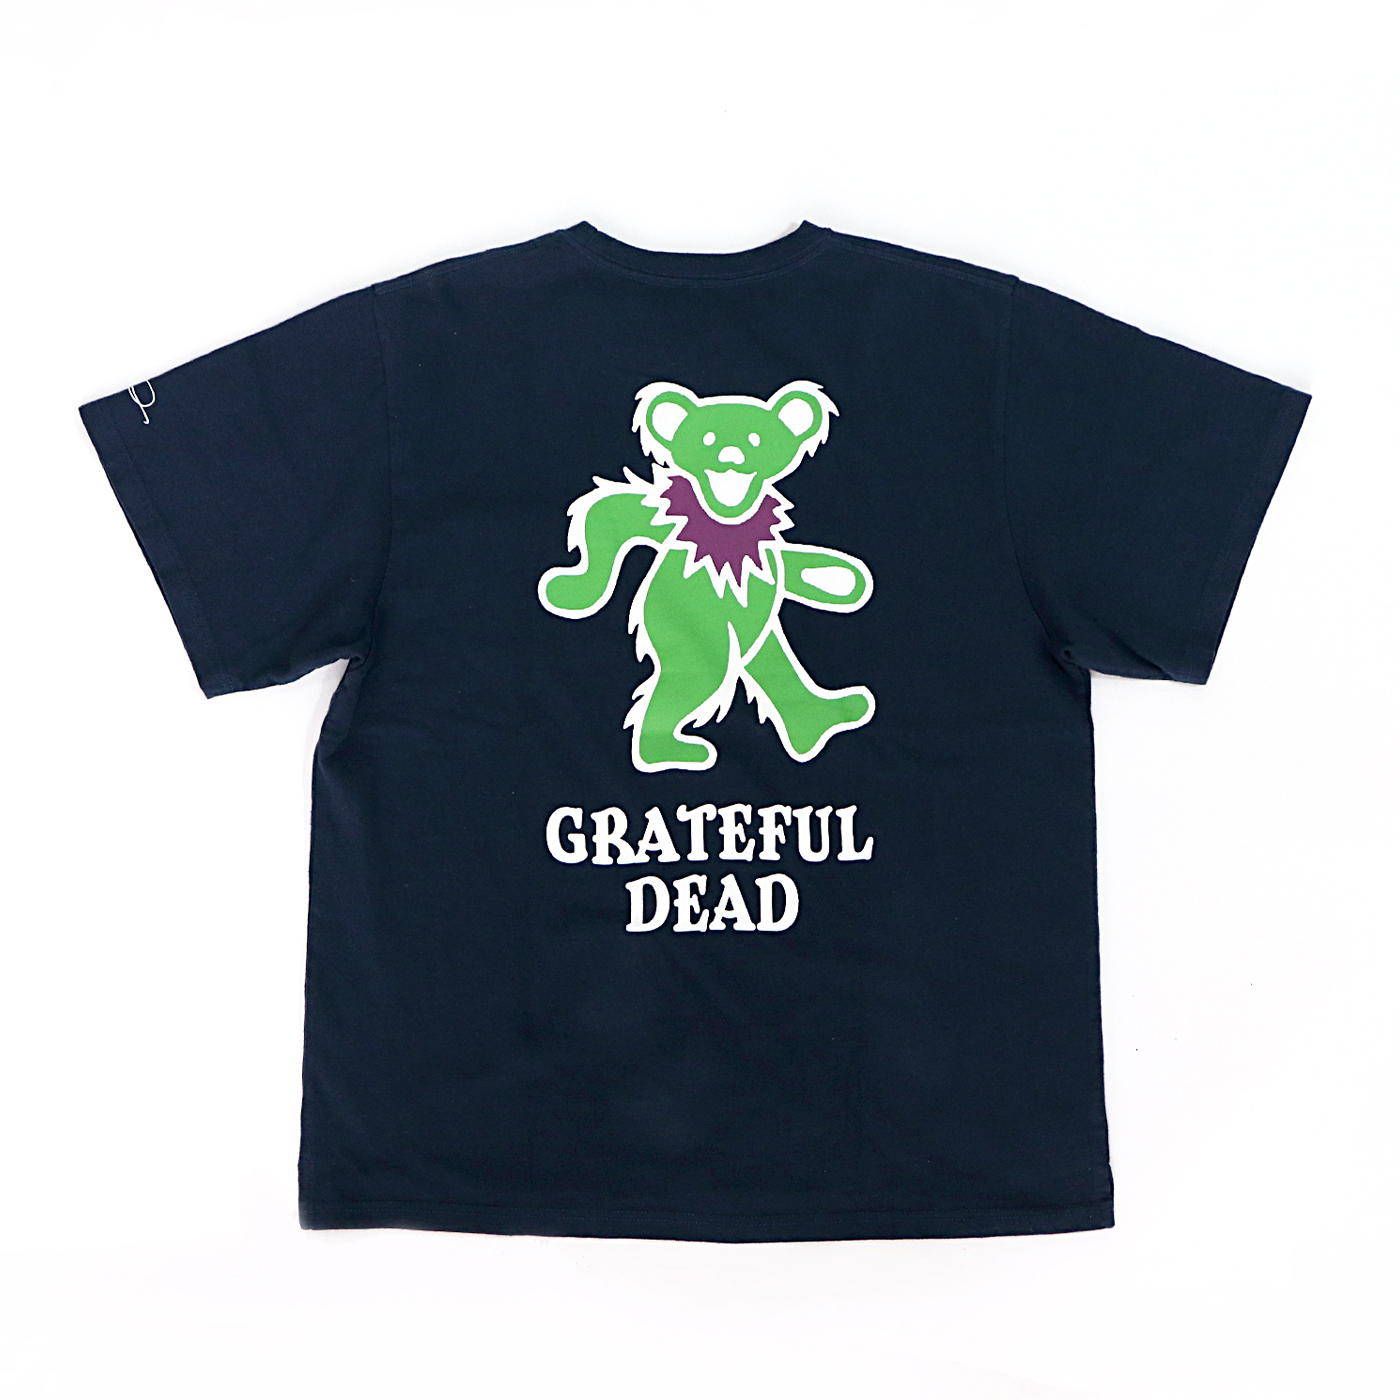 product: MS×DEAD CLASSIC BEA / color: NAVY 1